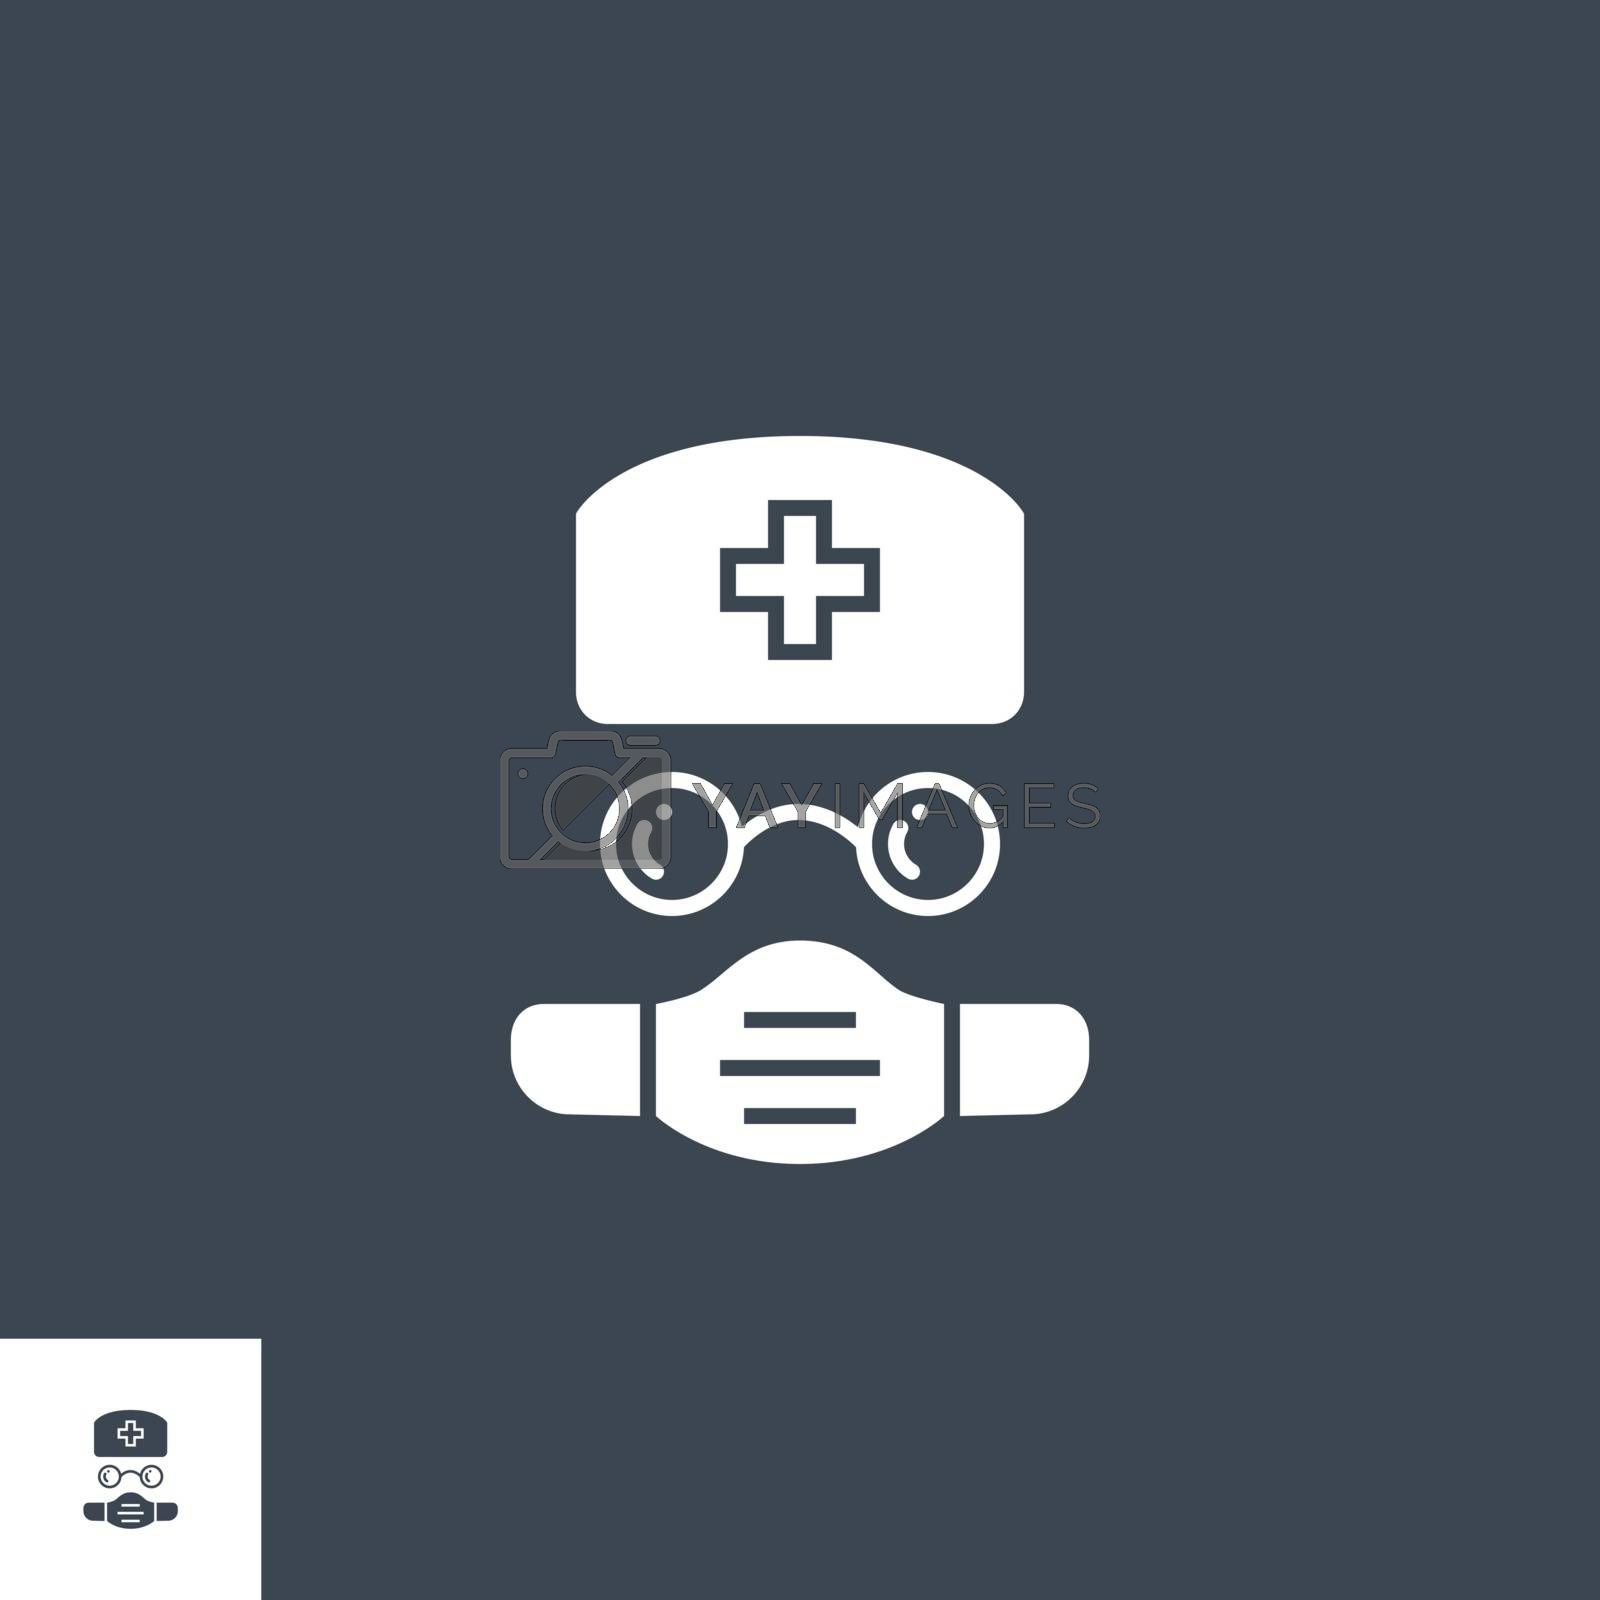 Doctor related vector glyph icon. Isolated on black background. Vector illustration.